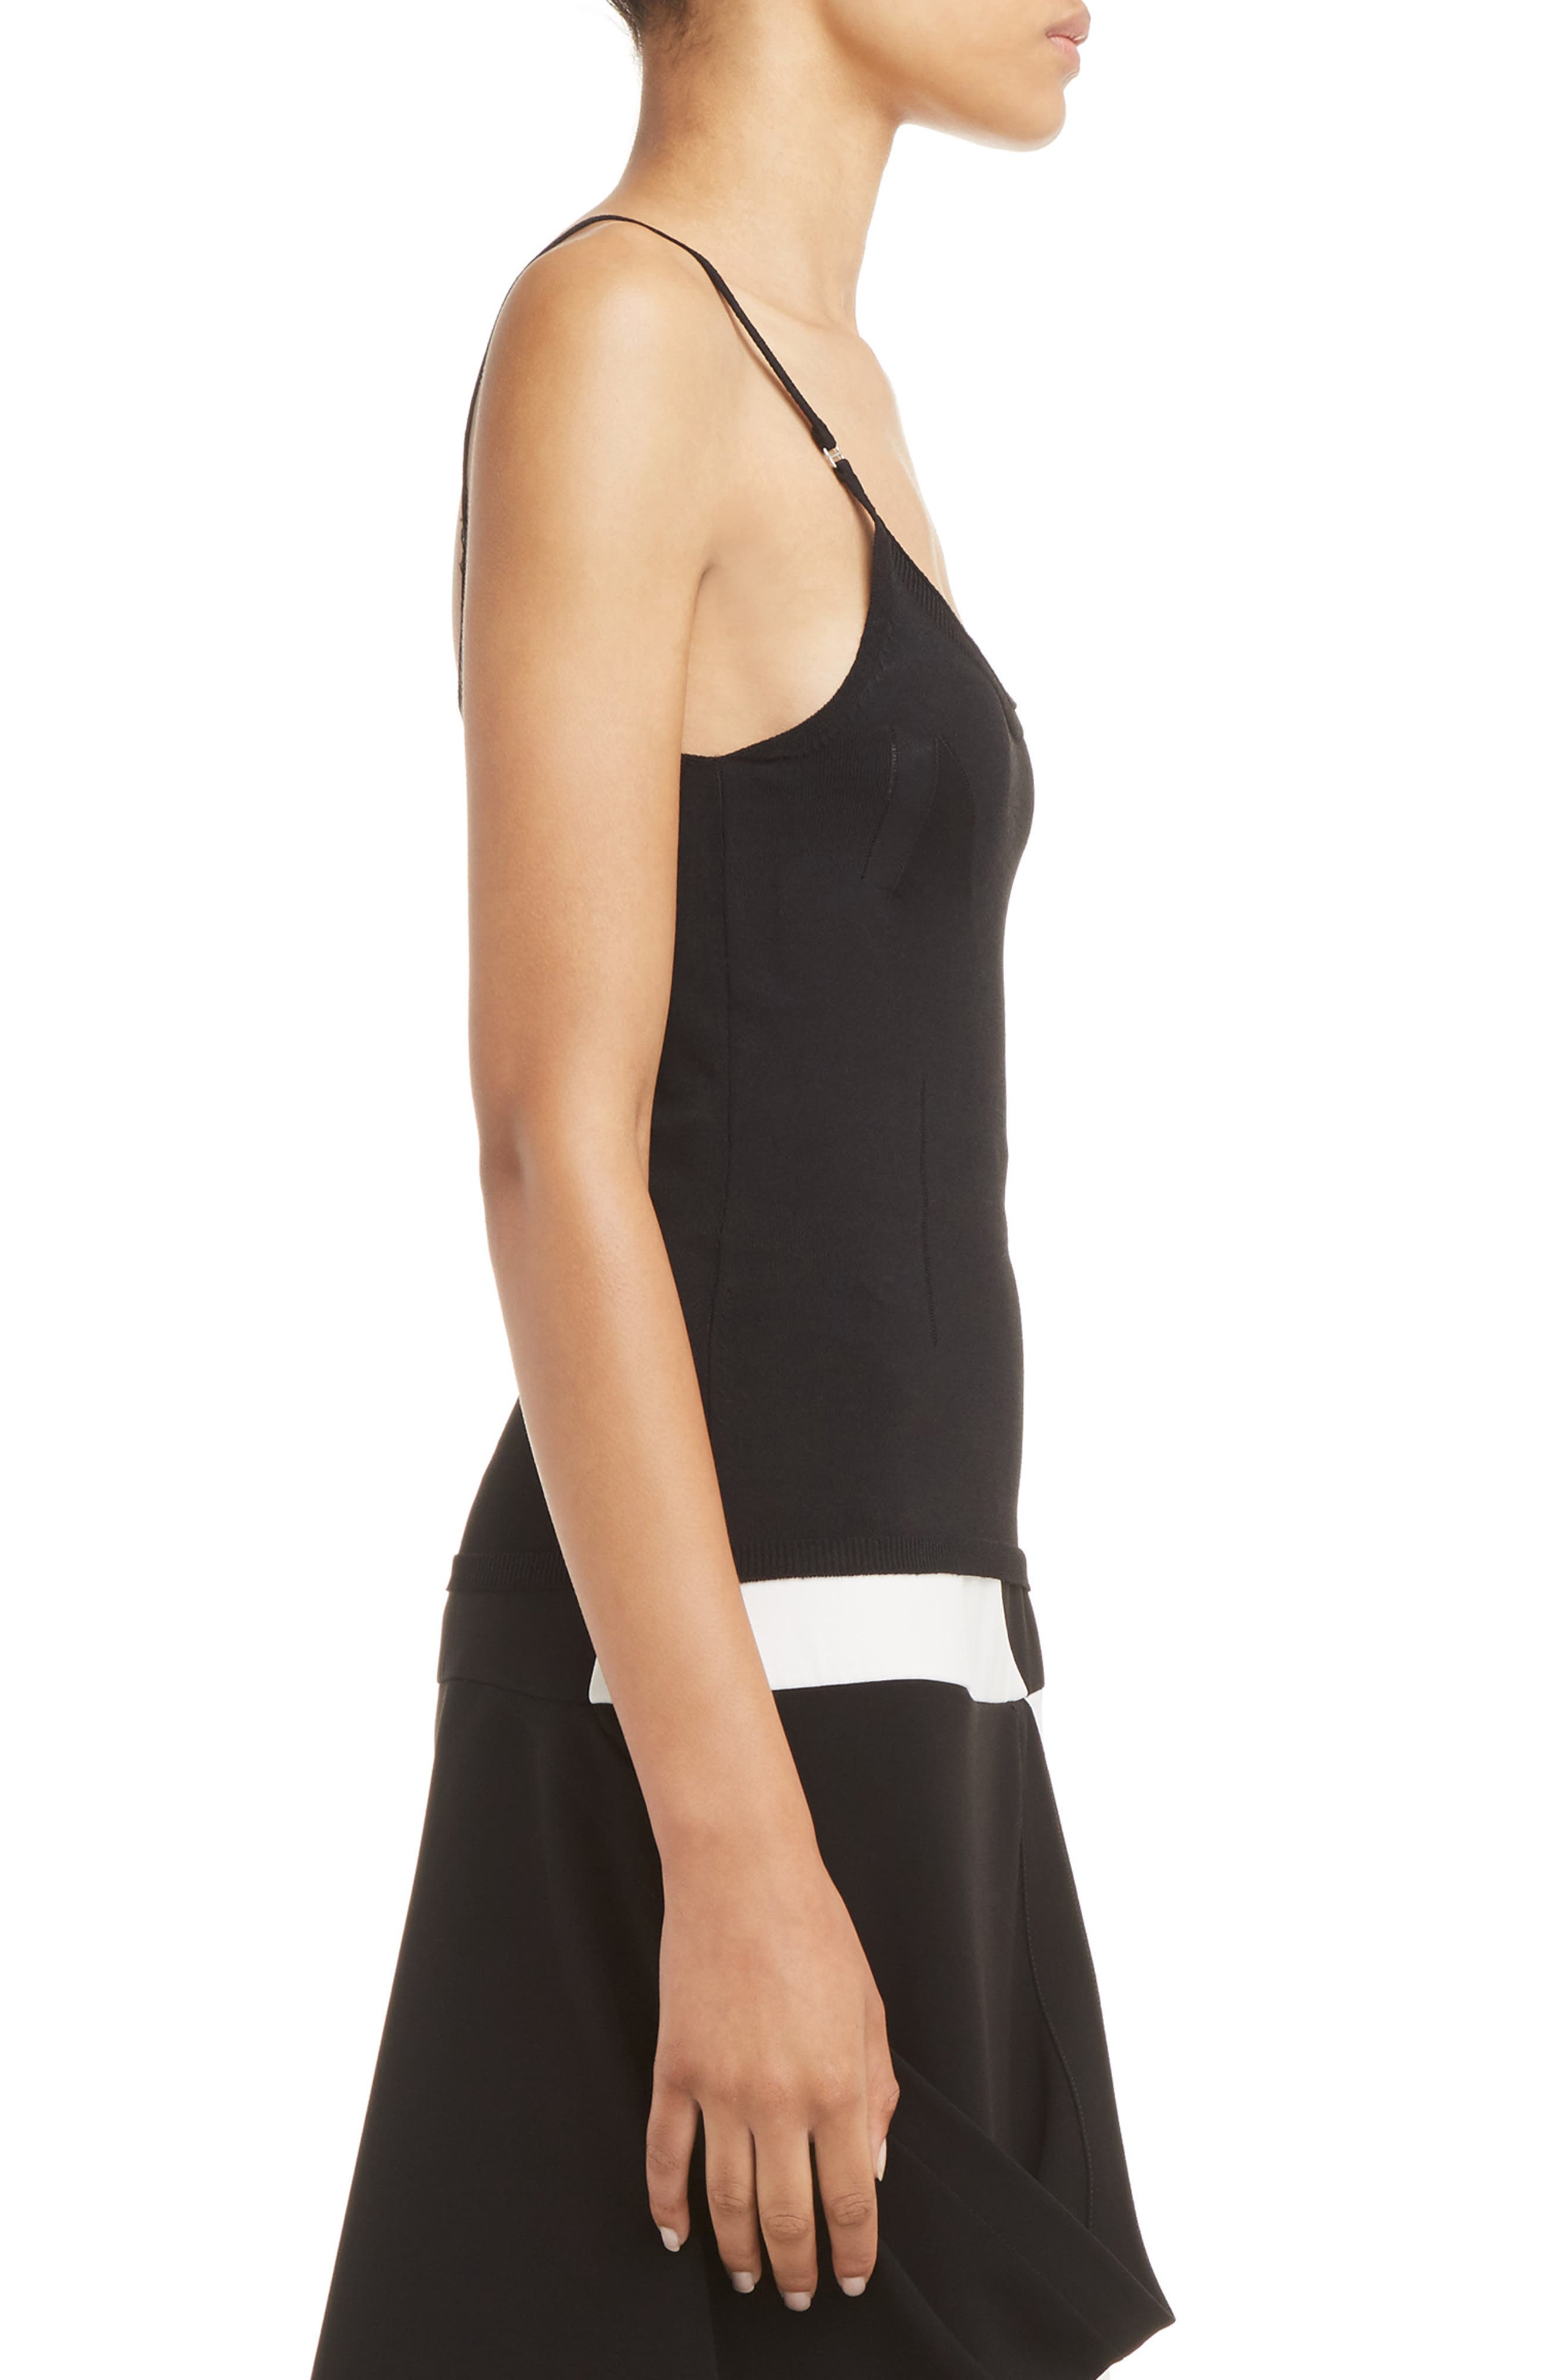 J.W.ANDERSON Geometric Camisole,                             Alternate thumbnail 3, color,                             001